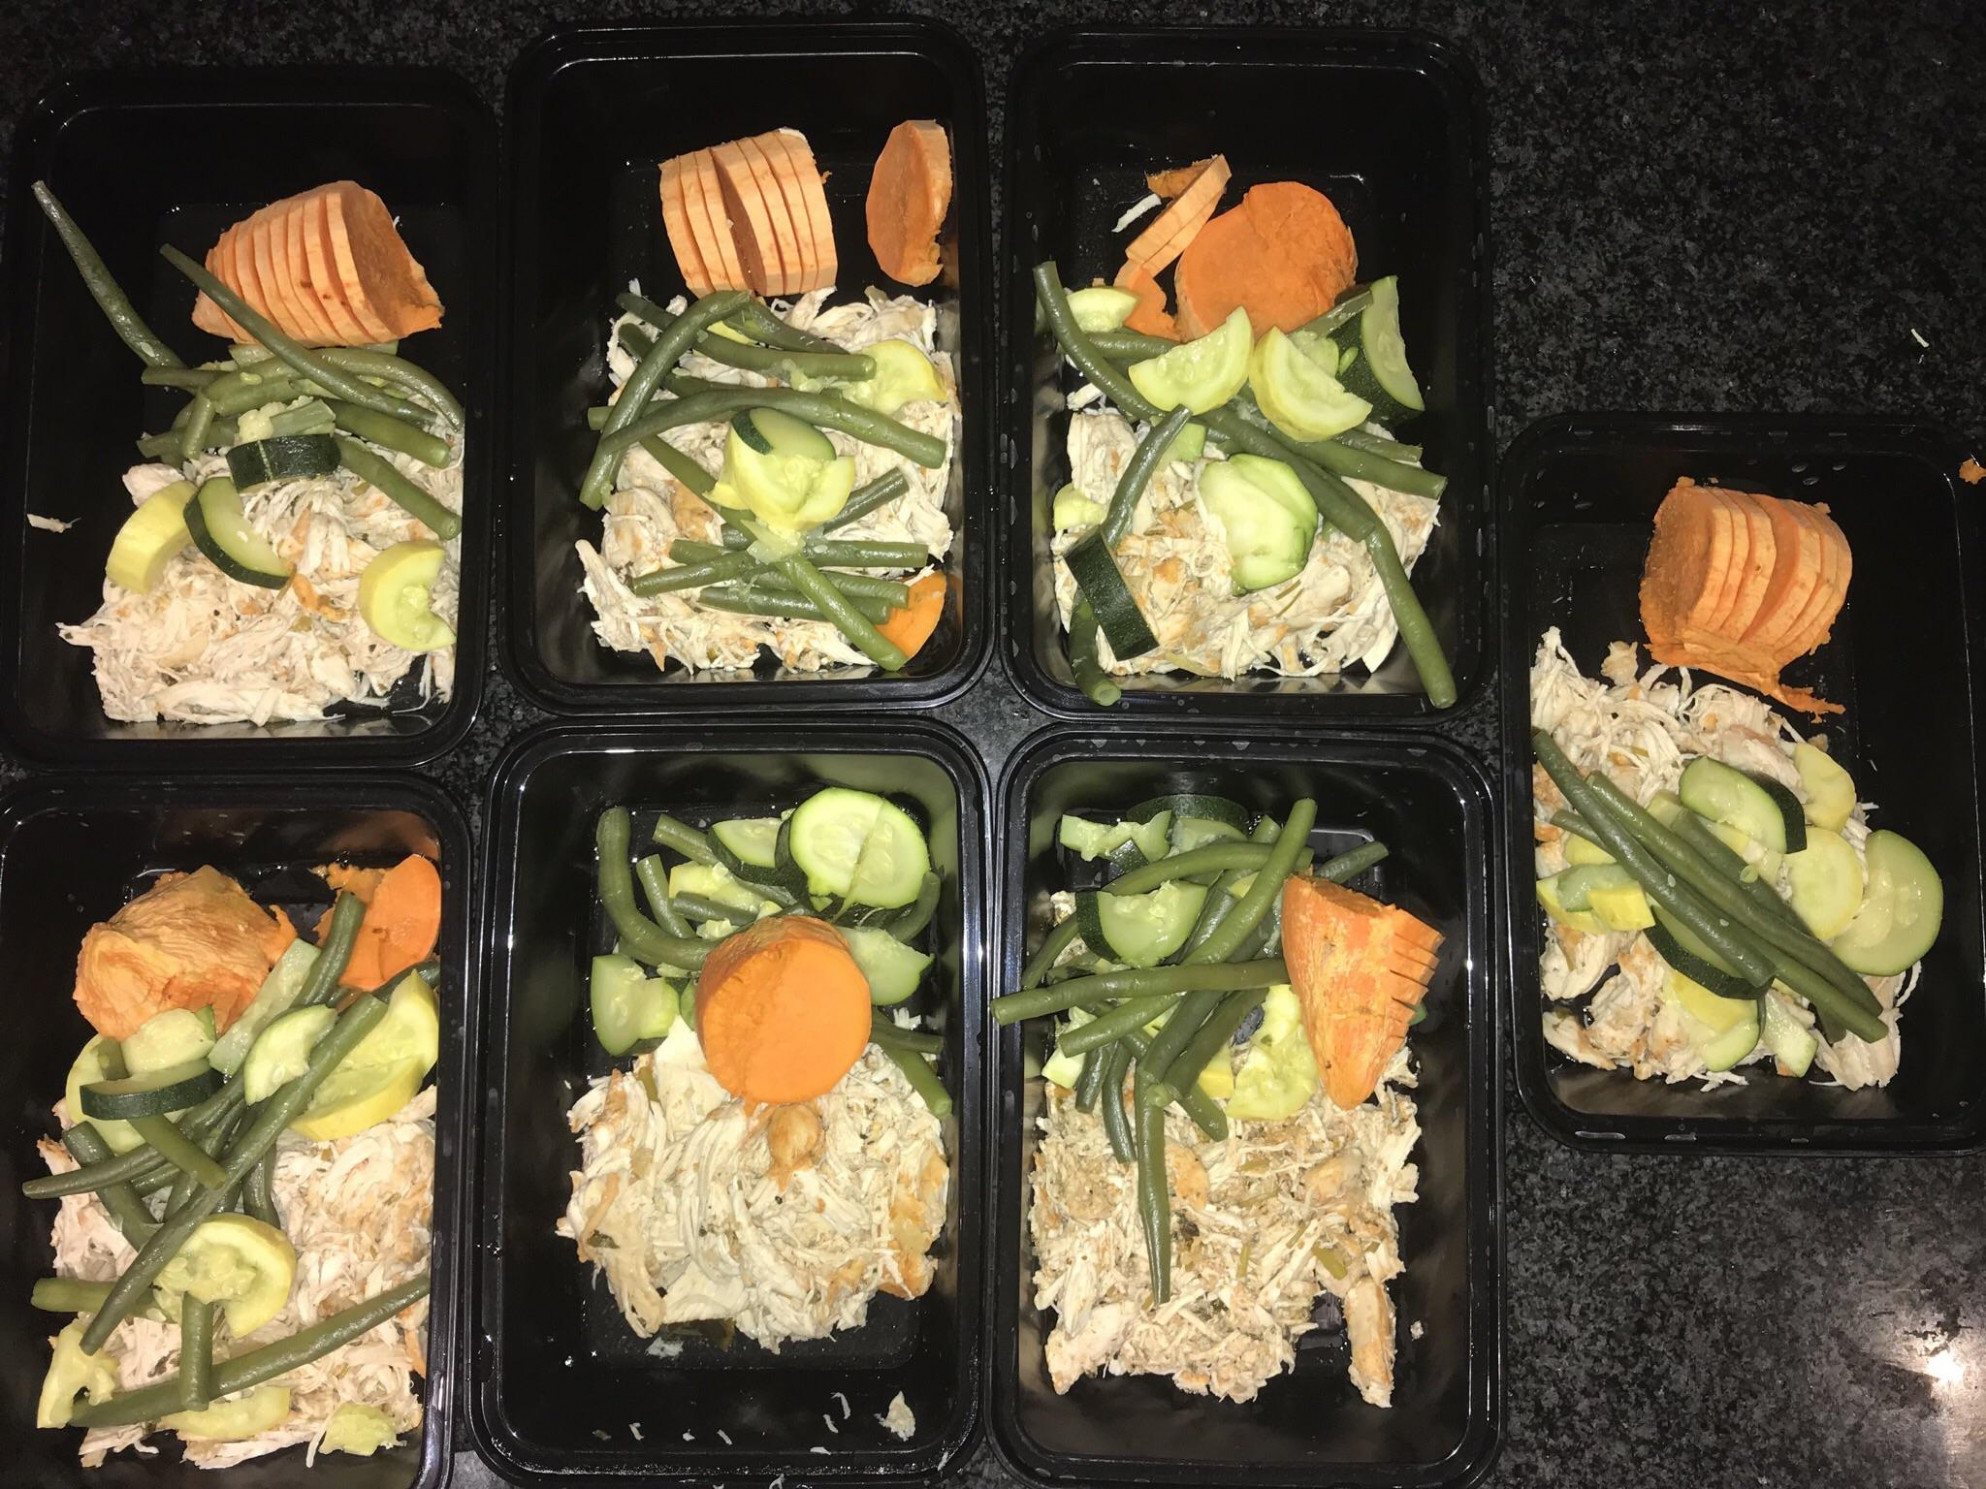 My first meal prep! Shredded chicken, sweet potato, zucchini ...